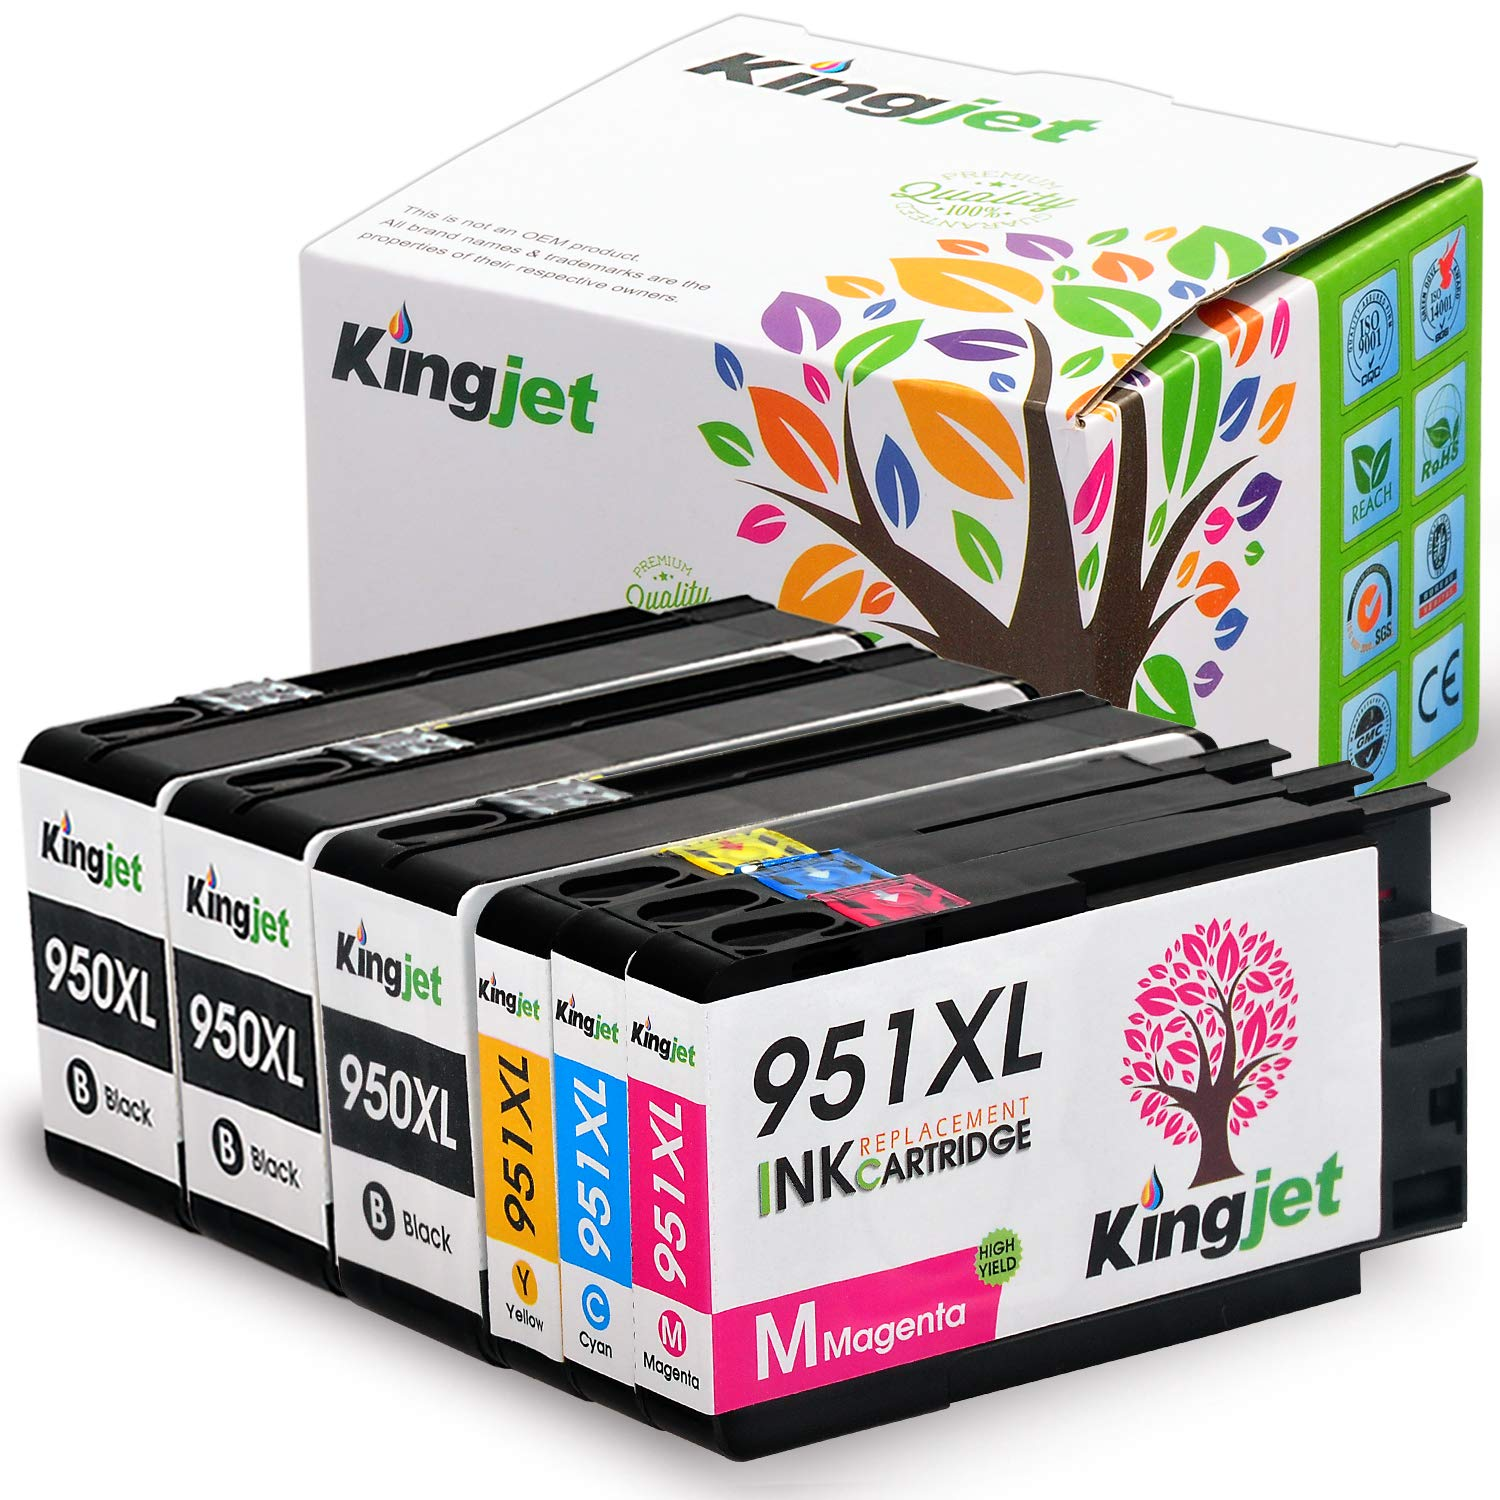 Kingjet 950XL 951XL Ink Cartridge High Yield Replacements Work for Officejet Pro 8600 8610 8620 8630 8640 8660 8615 8625 Printer (3BK 1C 1M 1Y)